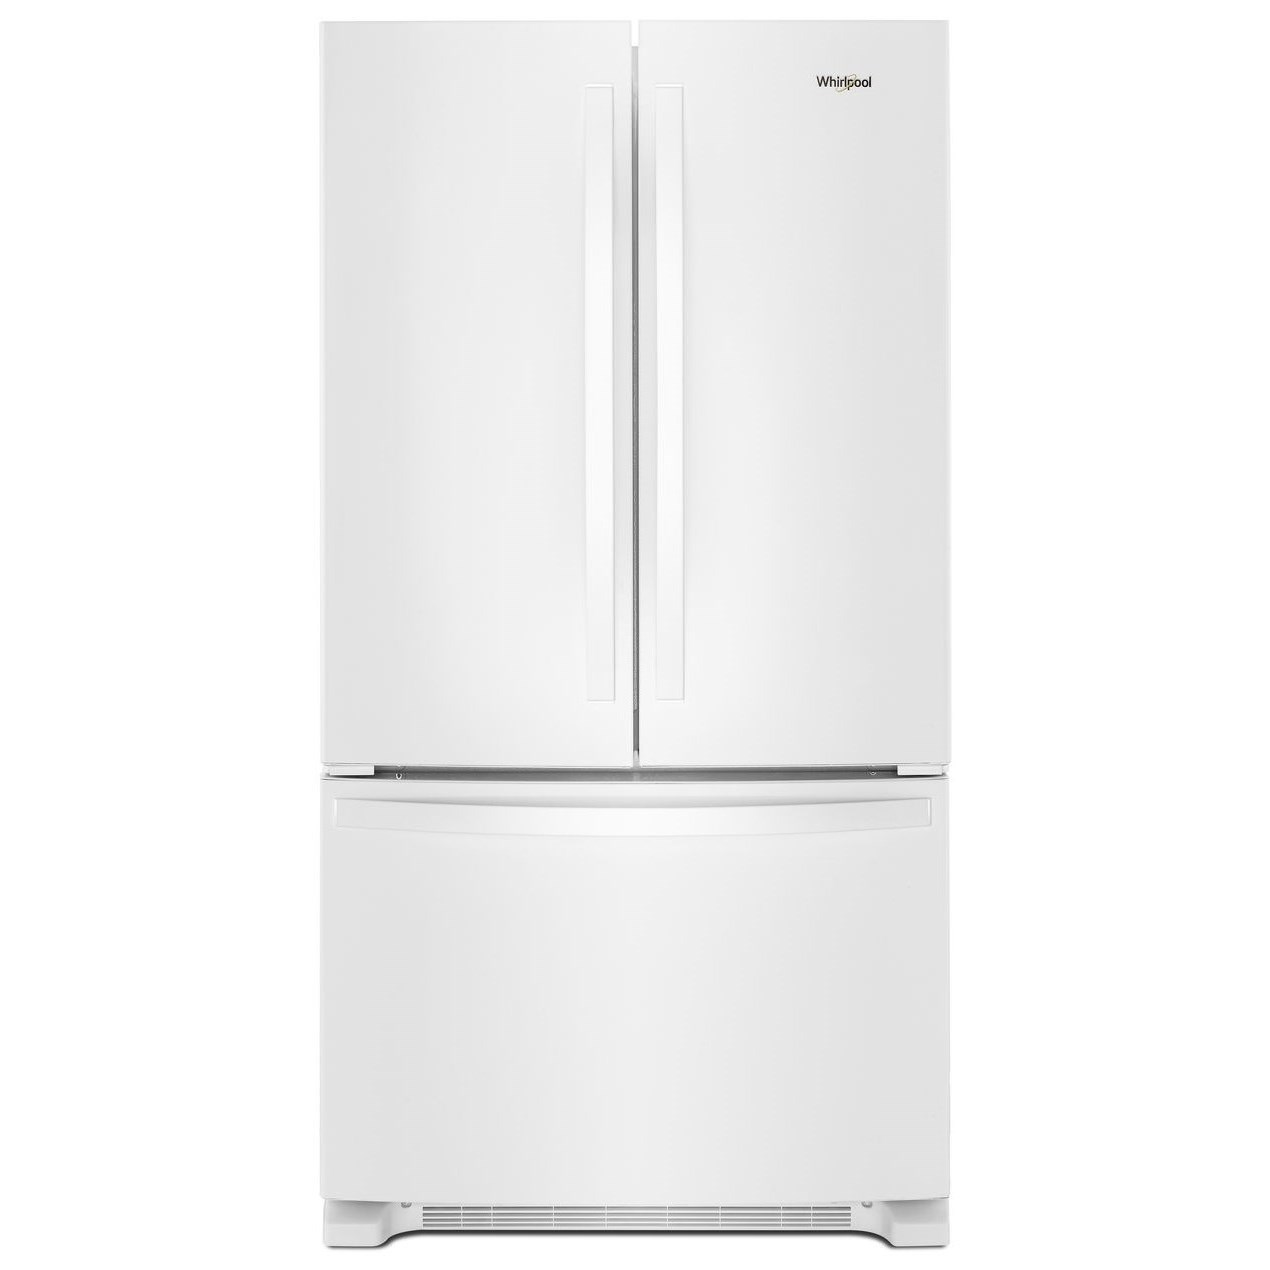 French Door Refrigerators 36-inch Wide French Door Refrigerator by Whirlpool at Furniture and ApplianceMart